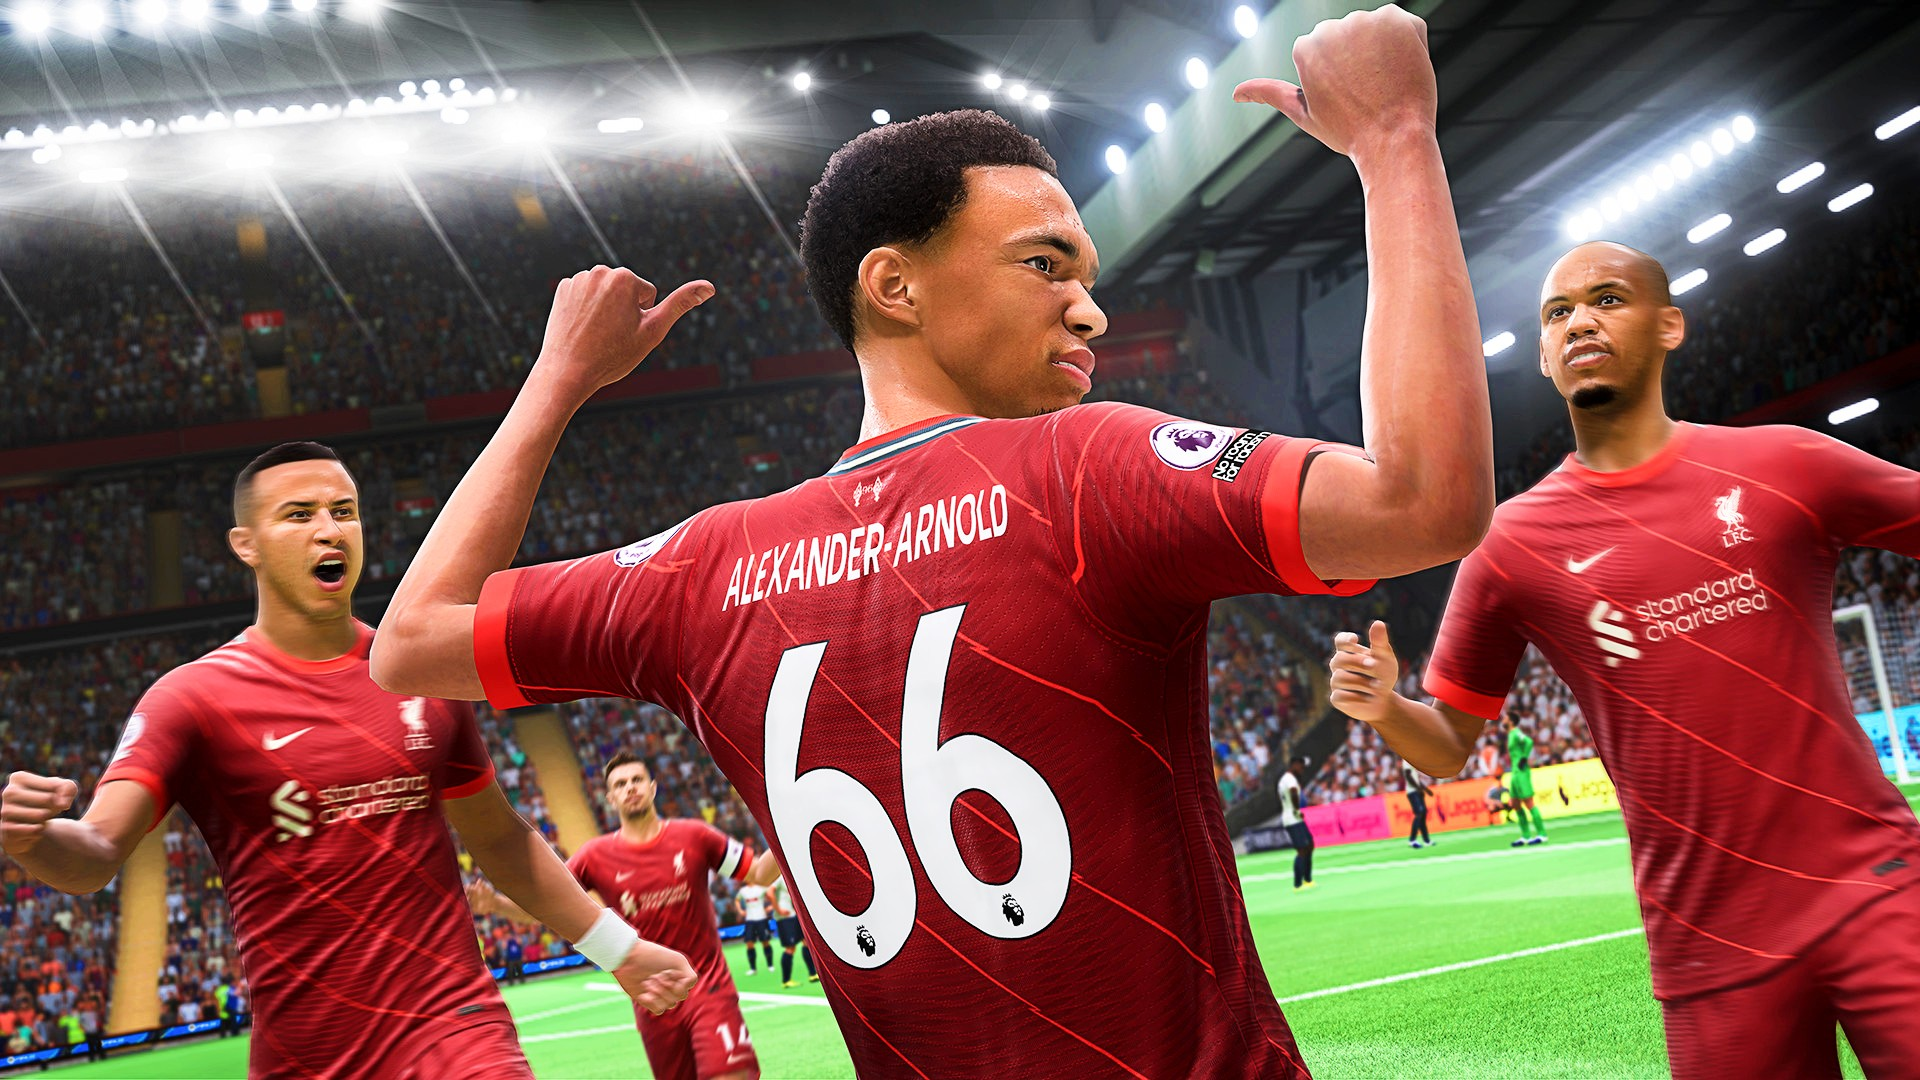 FIFA 22 comes to Steam and Origin in October – here's the trailer